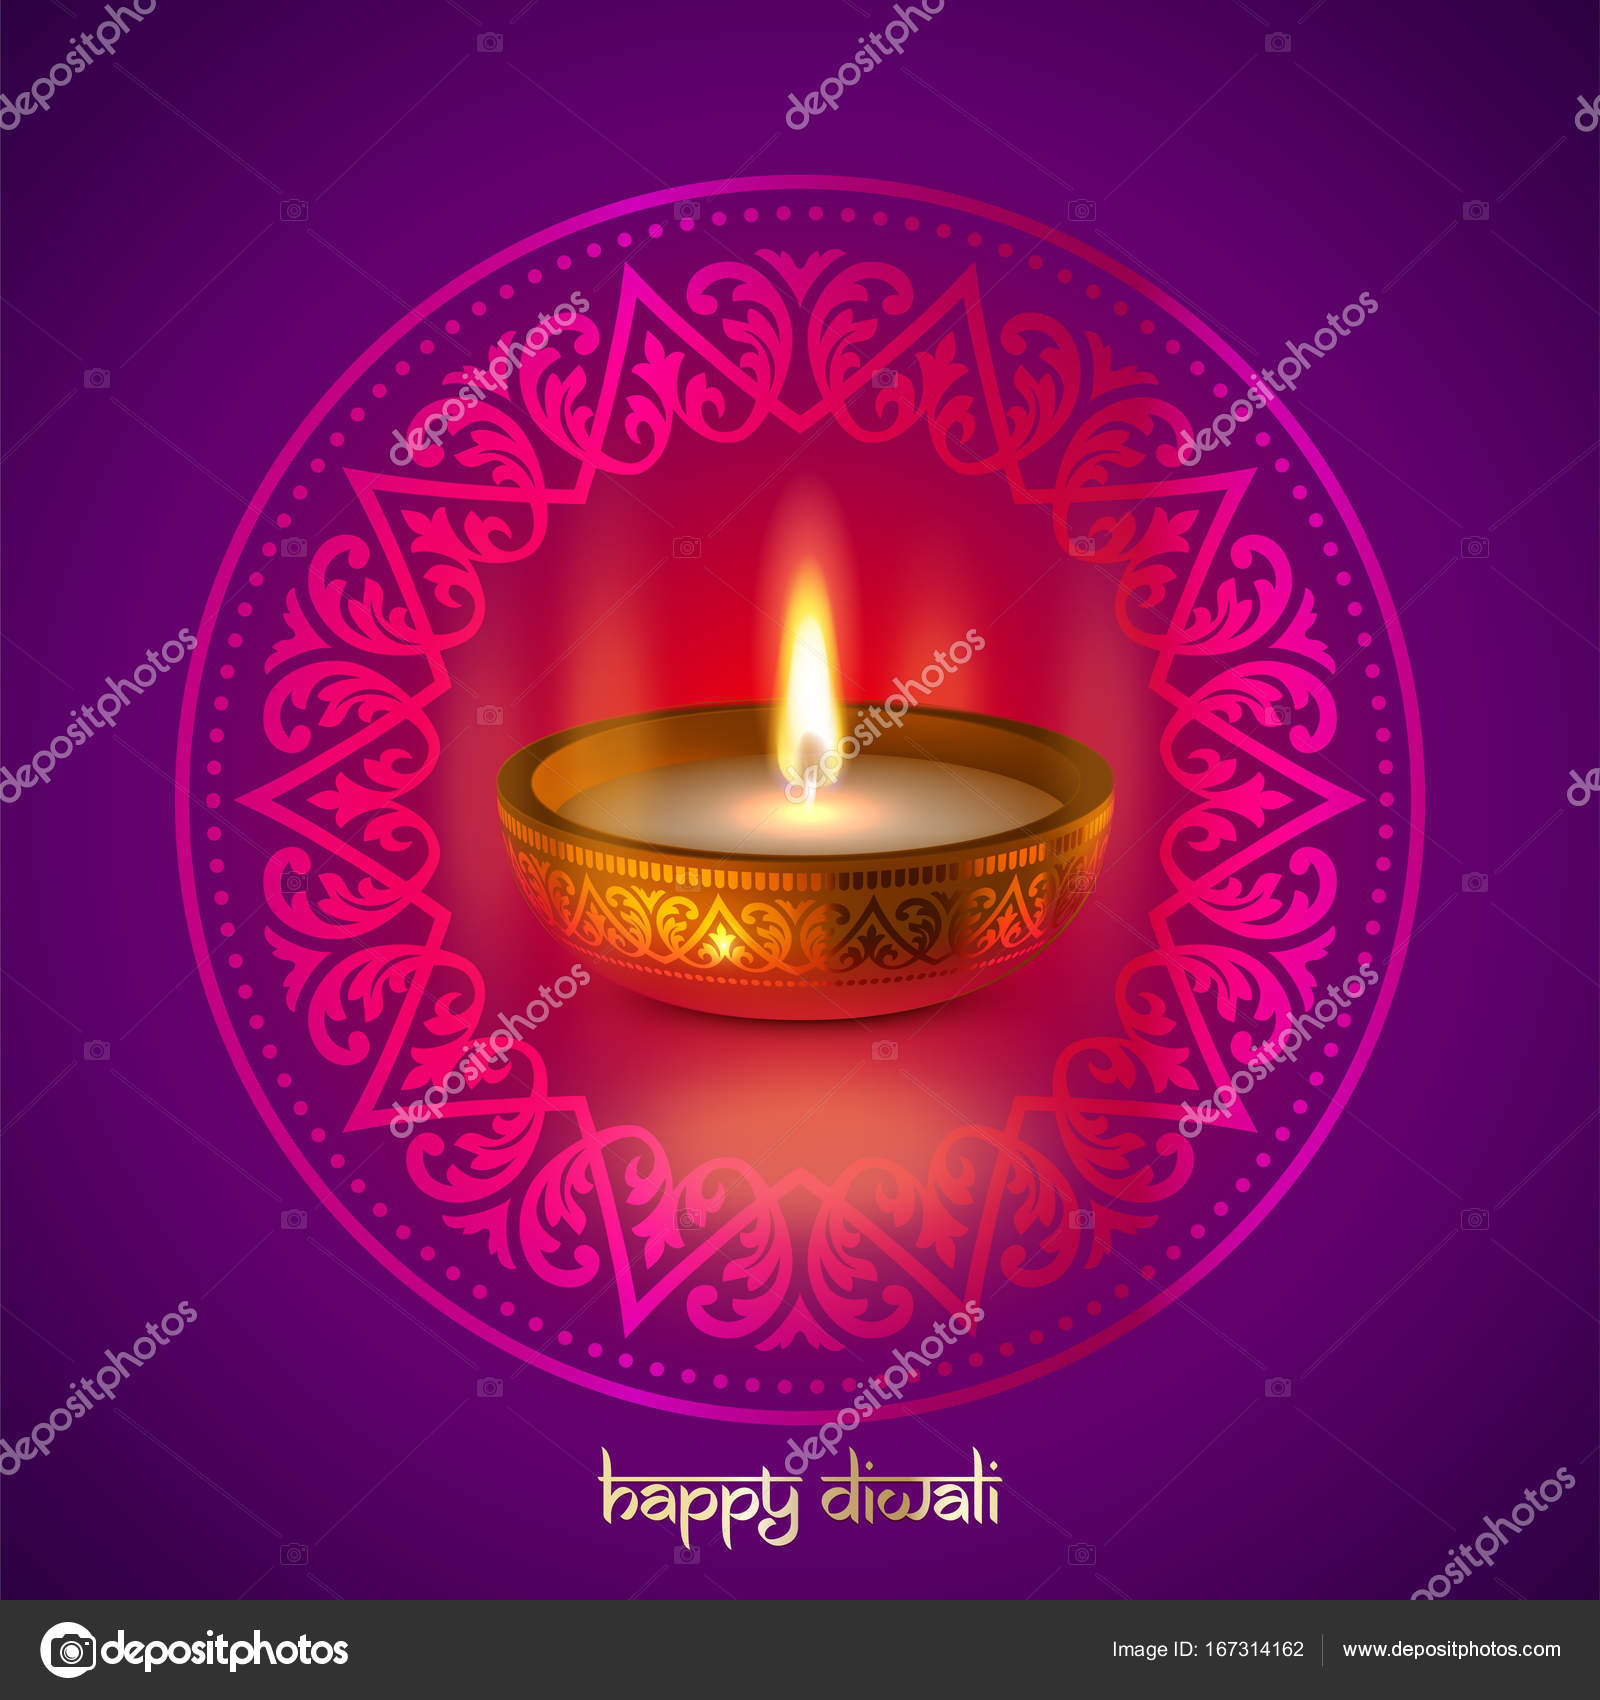 Happy diwali gold candle light indian festival greeting card vector happy diwali indian lights festival holiday traditional greeting card design vector diwali candle light flame lamp in golden bowl hindu ornament and m4hsunfo